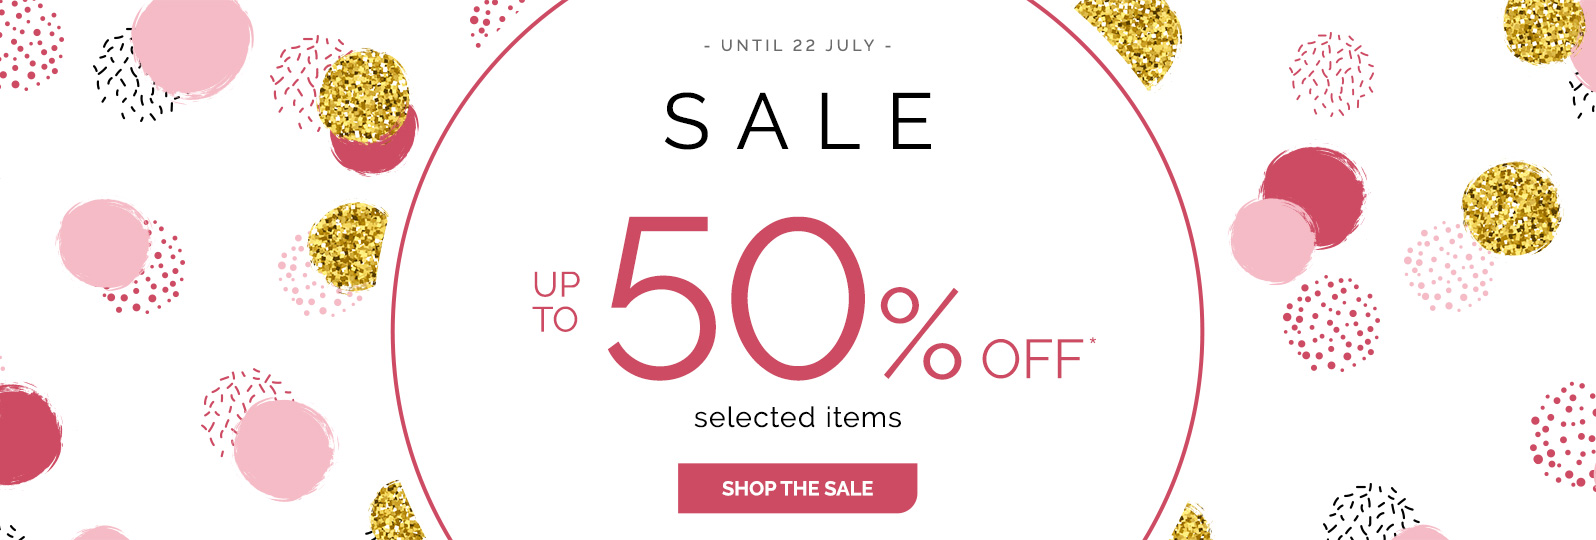 Sales - Up to 50%off* selected items